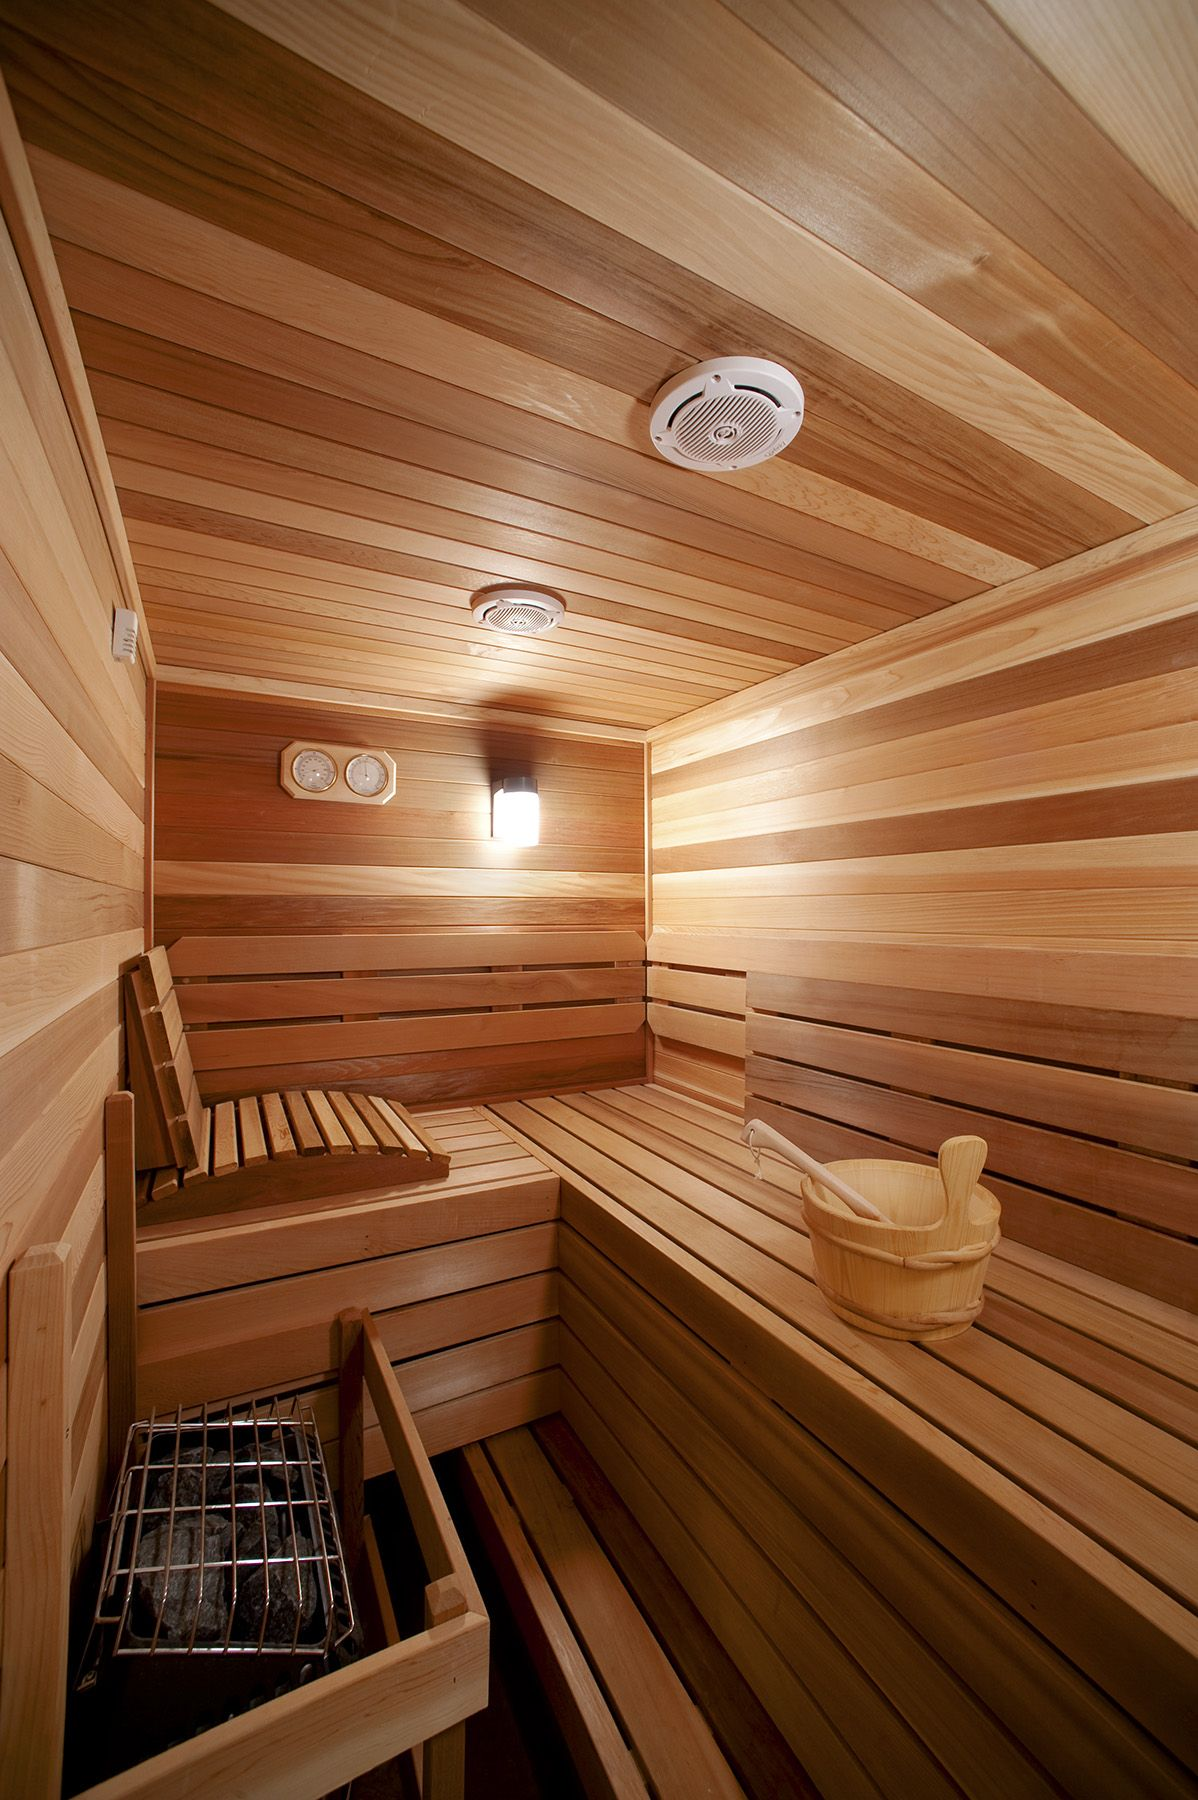 :: Sauna :: VDB Estates brings together the finest collection of luxury real estate, luxury properties, and luxury homes for sale in Seattle, Bellevue, Medina, Laurelhurst, Clyde Hill, Madrona, and many more in Washington's Pacific Northwest. Visit www.VDBestates.com to see more homes and information.